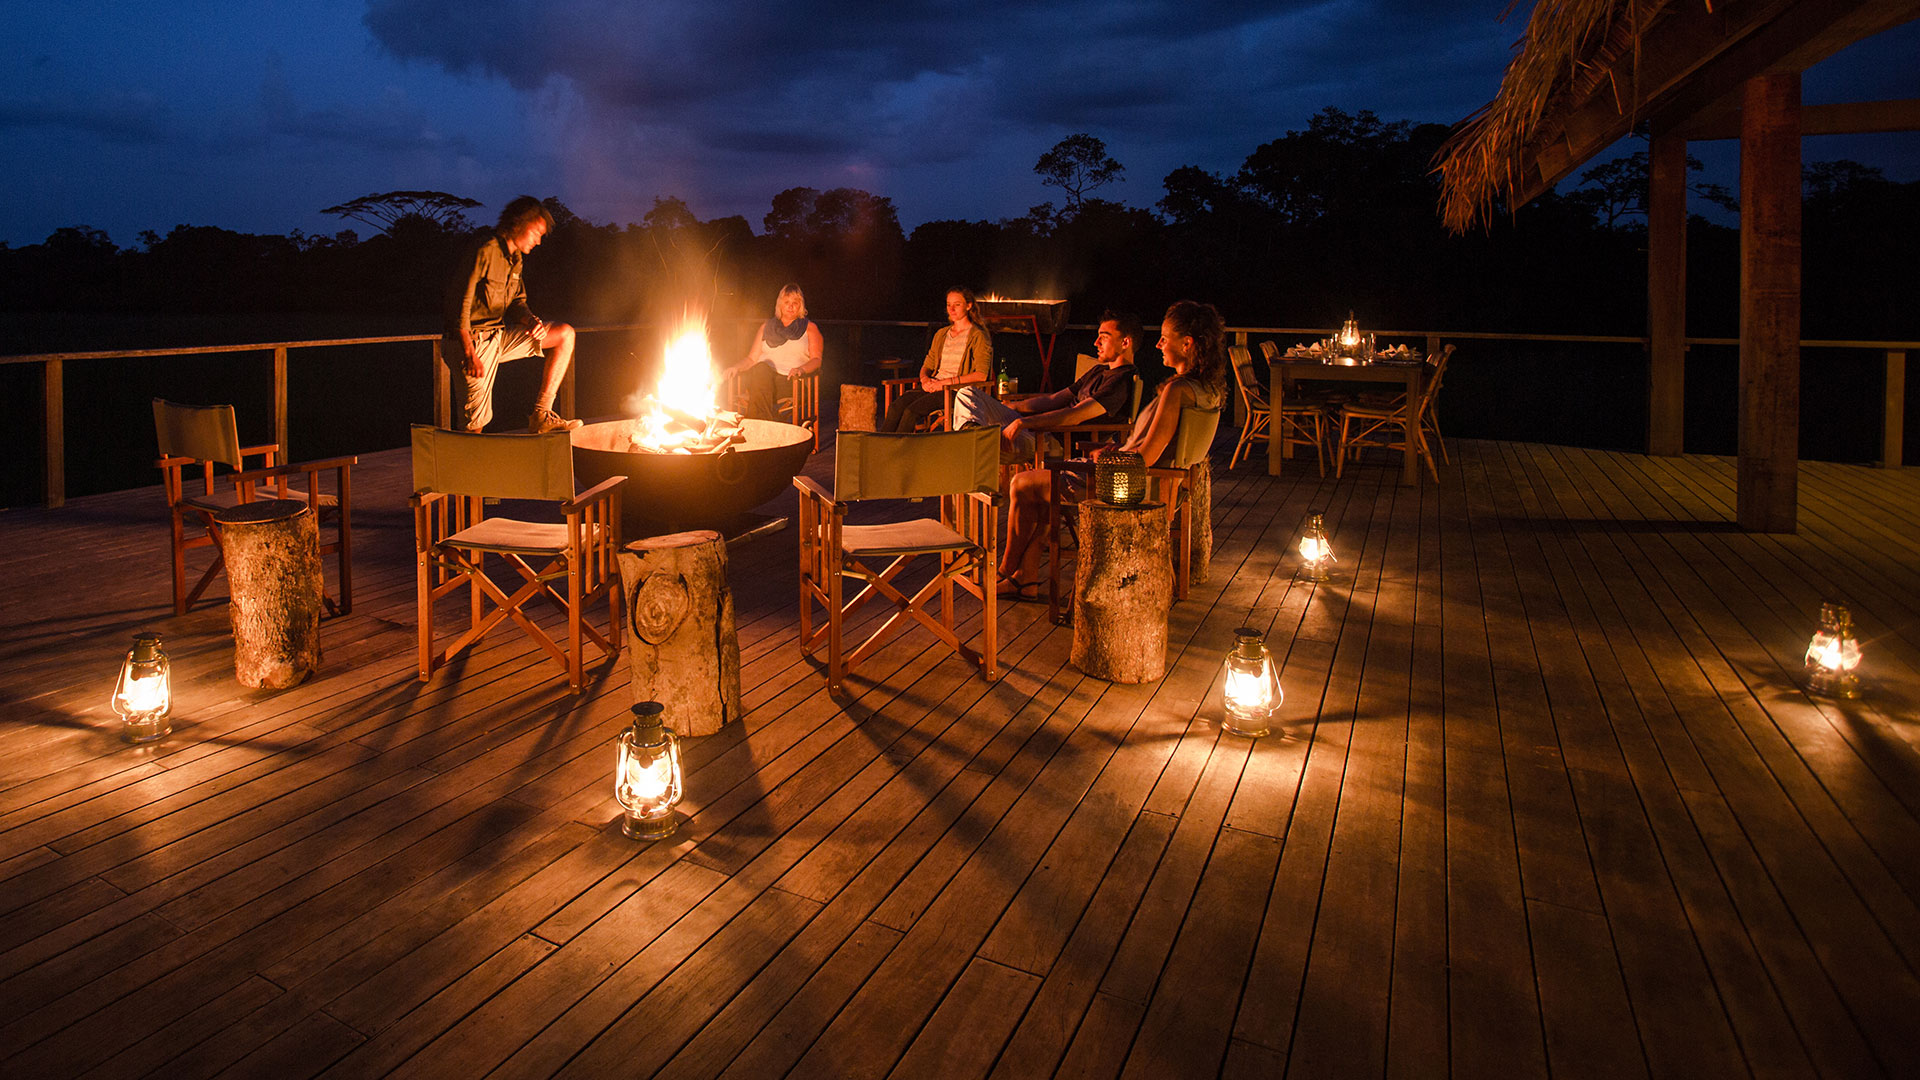 Guests on the deck of Mboko Camp at night, Odzala-Kokoua National Park, Congo